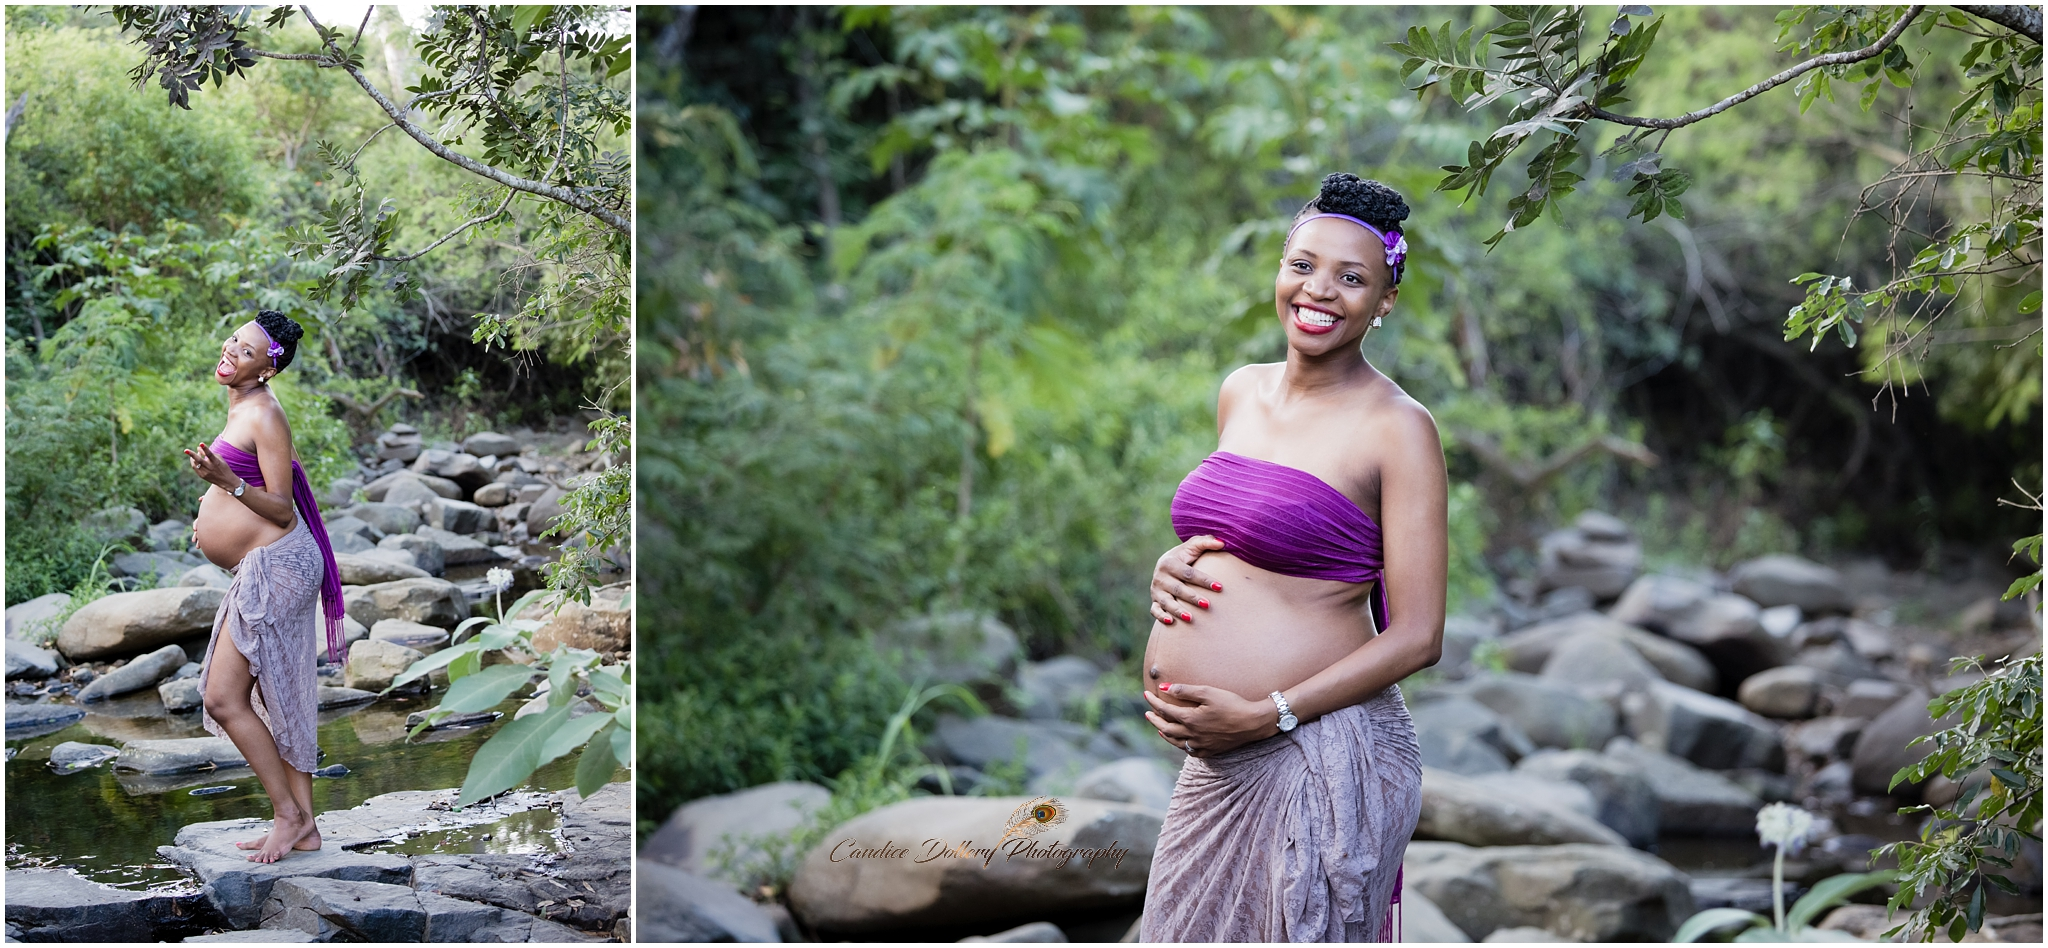 gcobisas-maternity-candice-dollery-photography_032